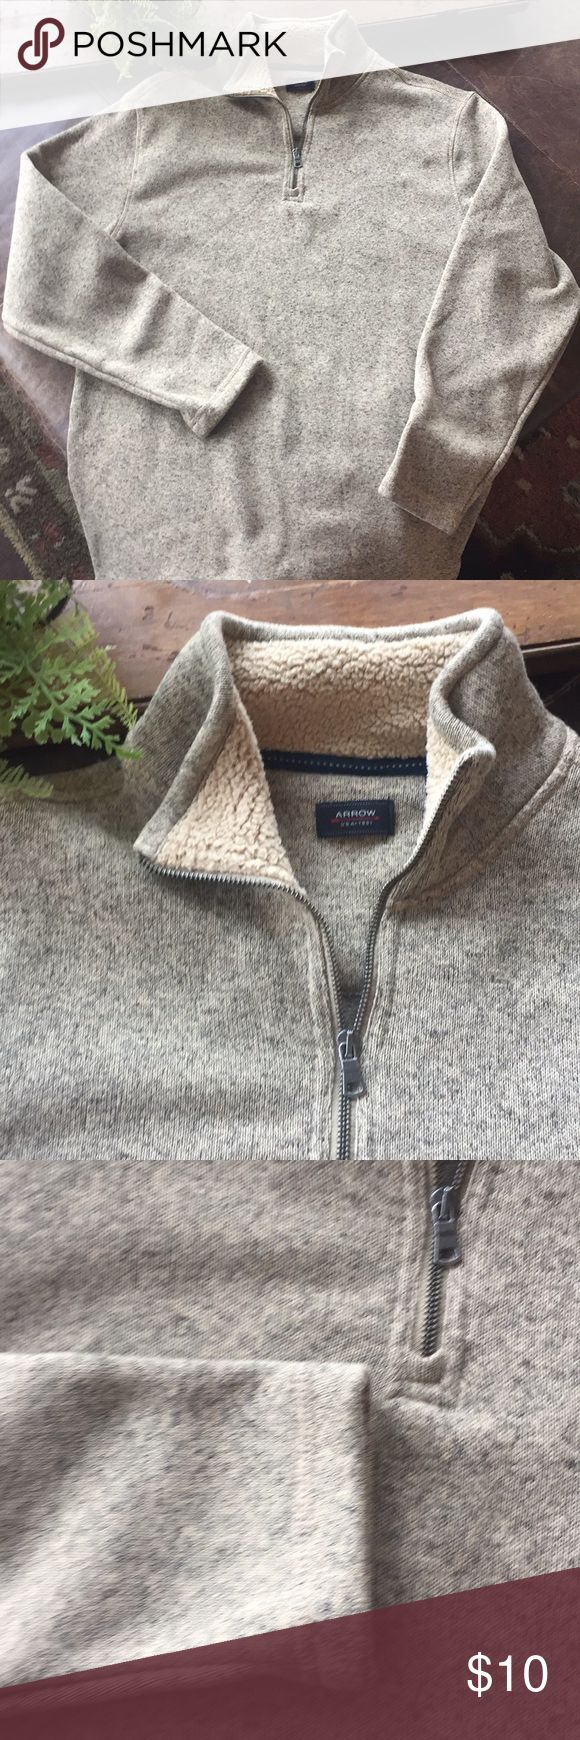 Men's pullover, M Perfect condition! Arrow Shirts